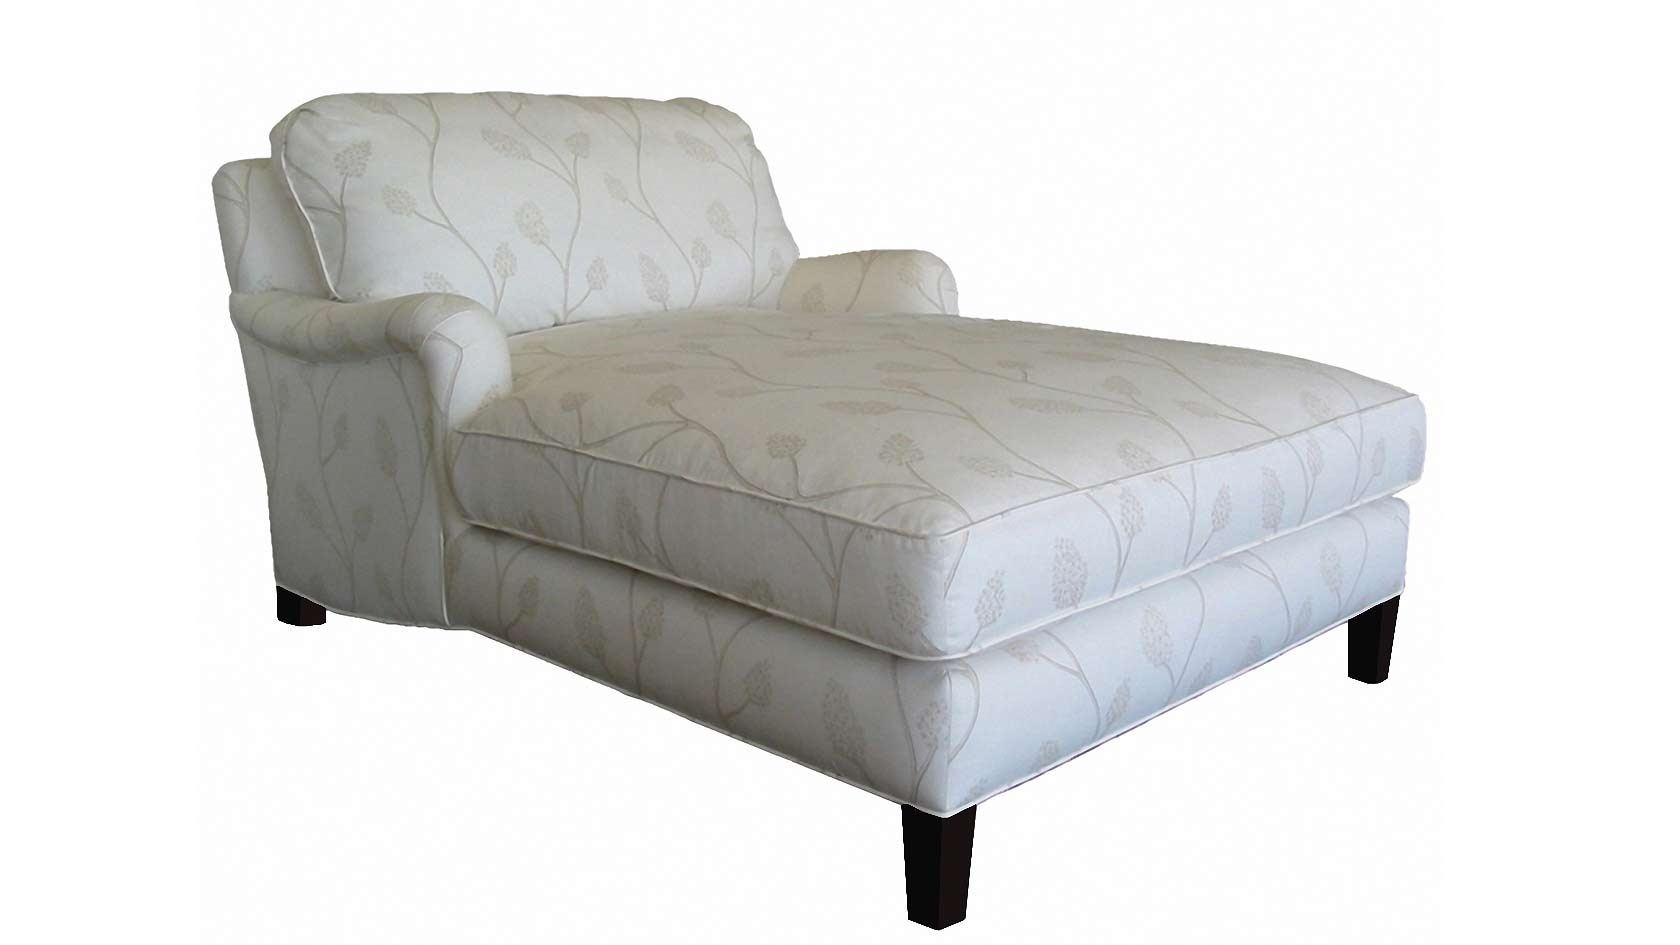 Newest Double Arm Chaise Lounge Contemporary Chair Slipcovers With Arms Throughout Chaises With Arms (View 13 of 15)